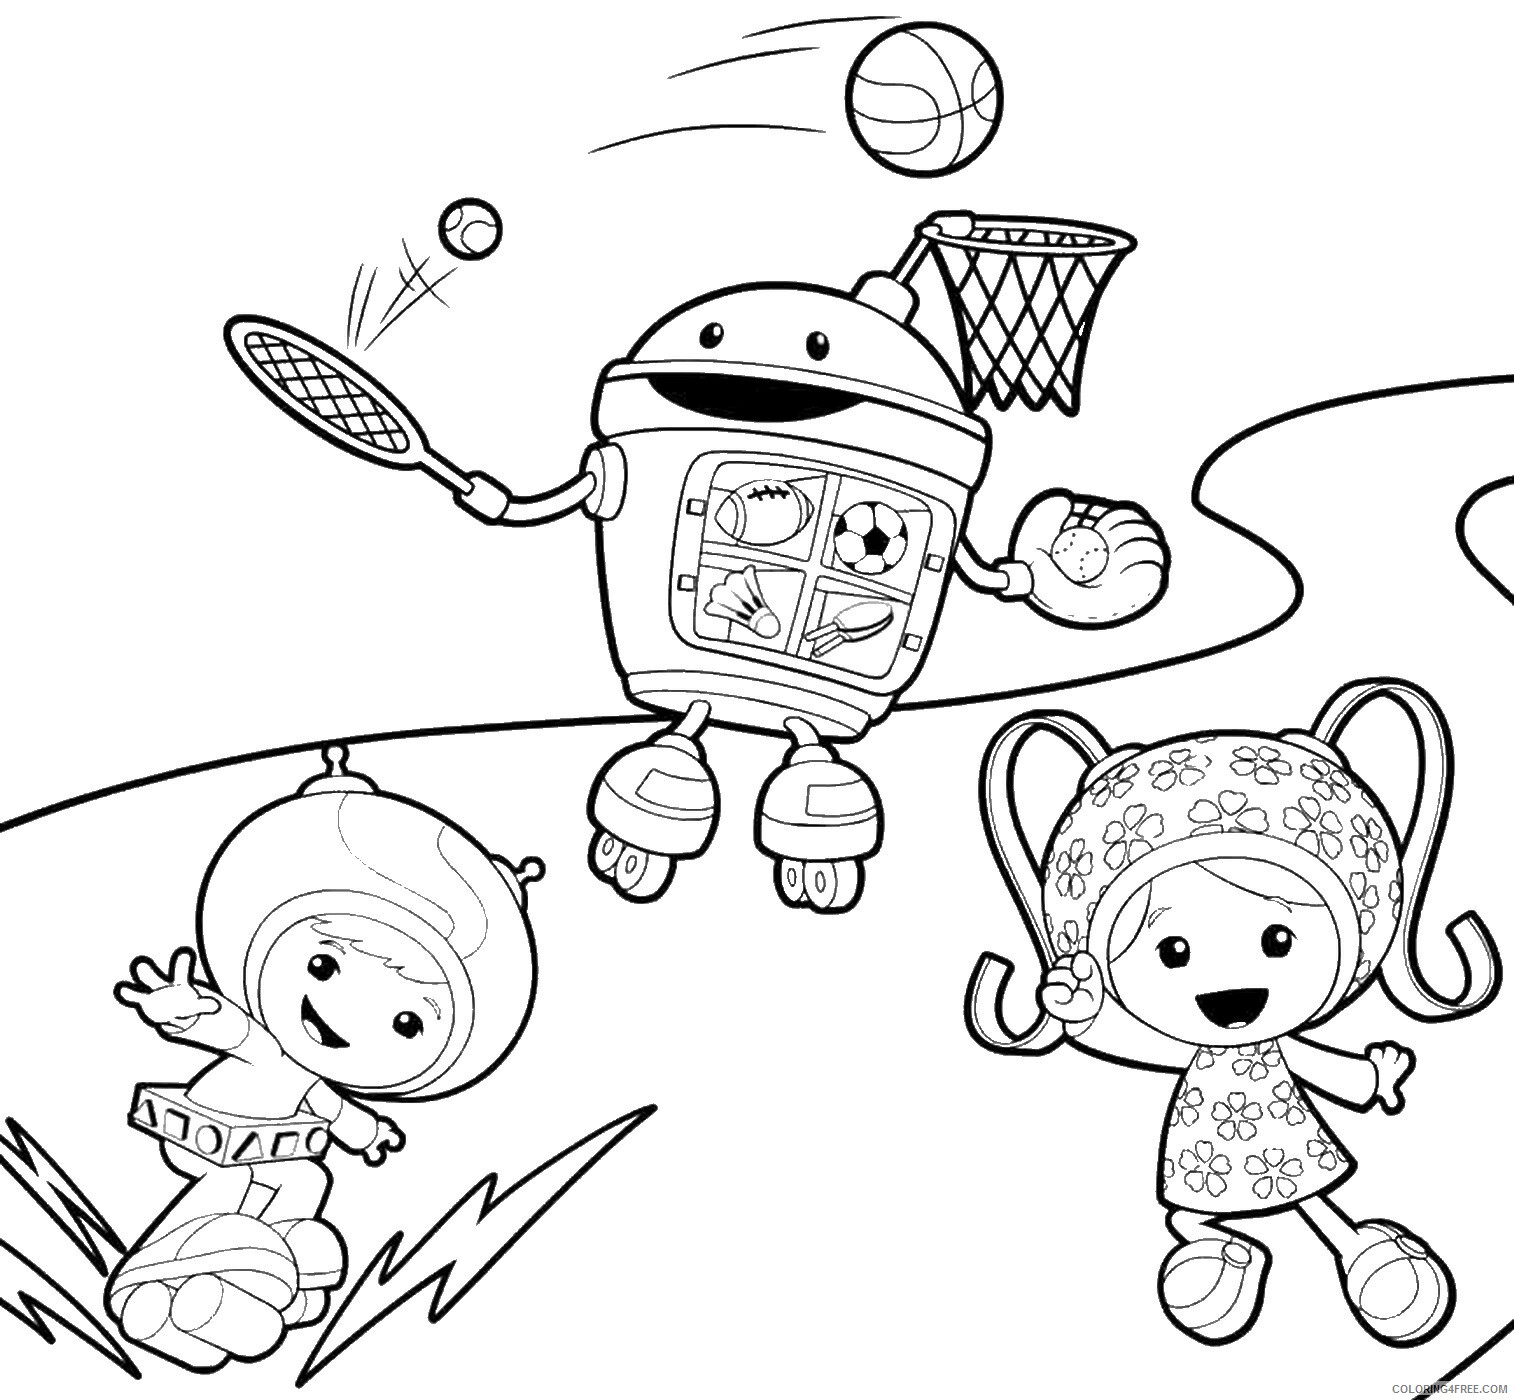 Team Umizoomi Coloring Pages TV Film Team Umizoomi 09 Printable 2020 08445 Coloring4free